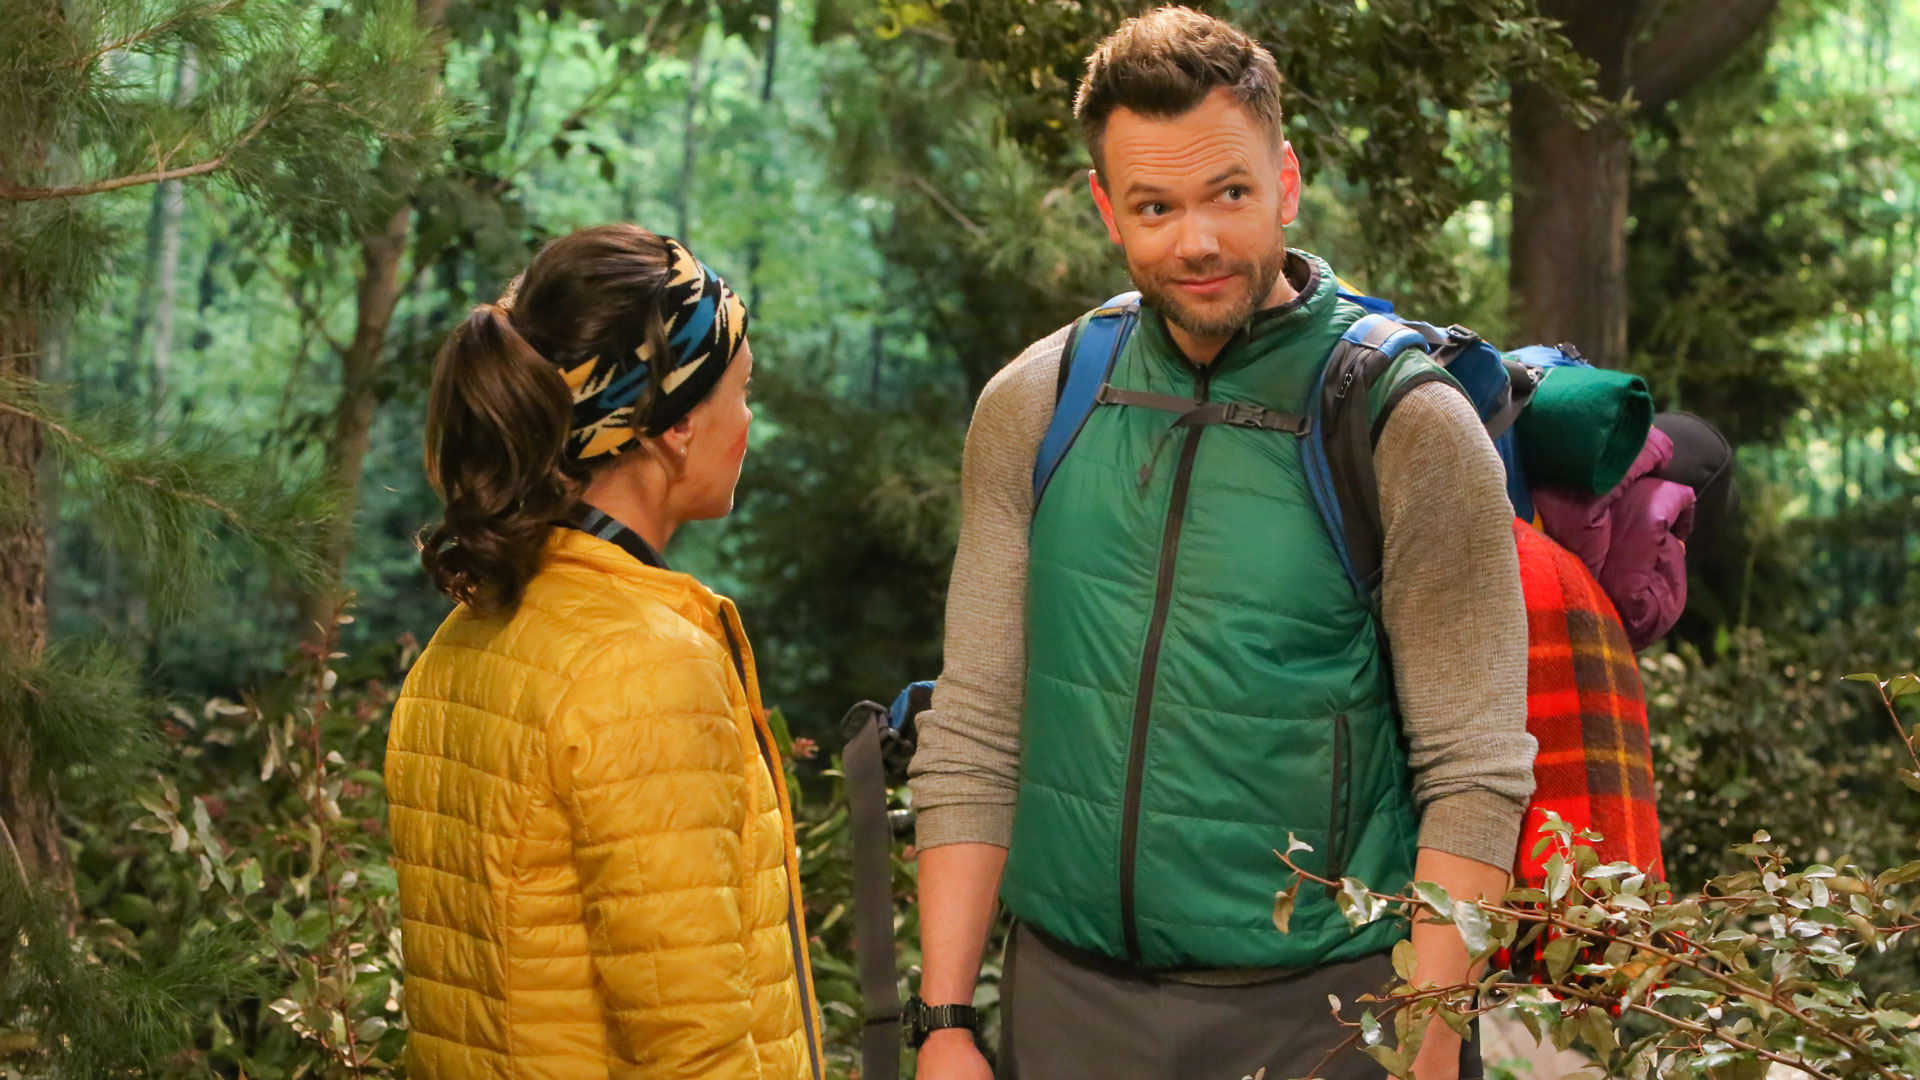 Jack has a heart-to-heart with Brooke after she crashes his wilderness retreat.